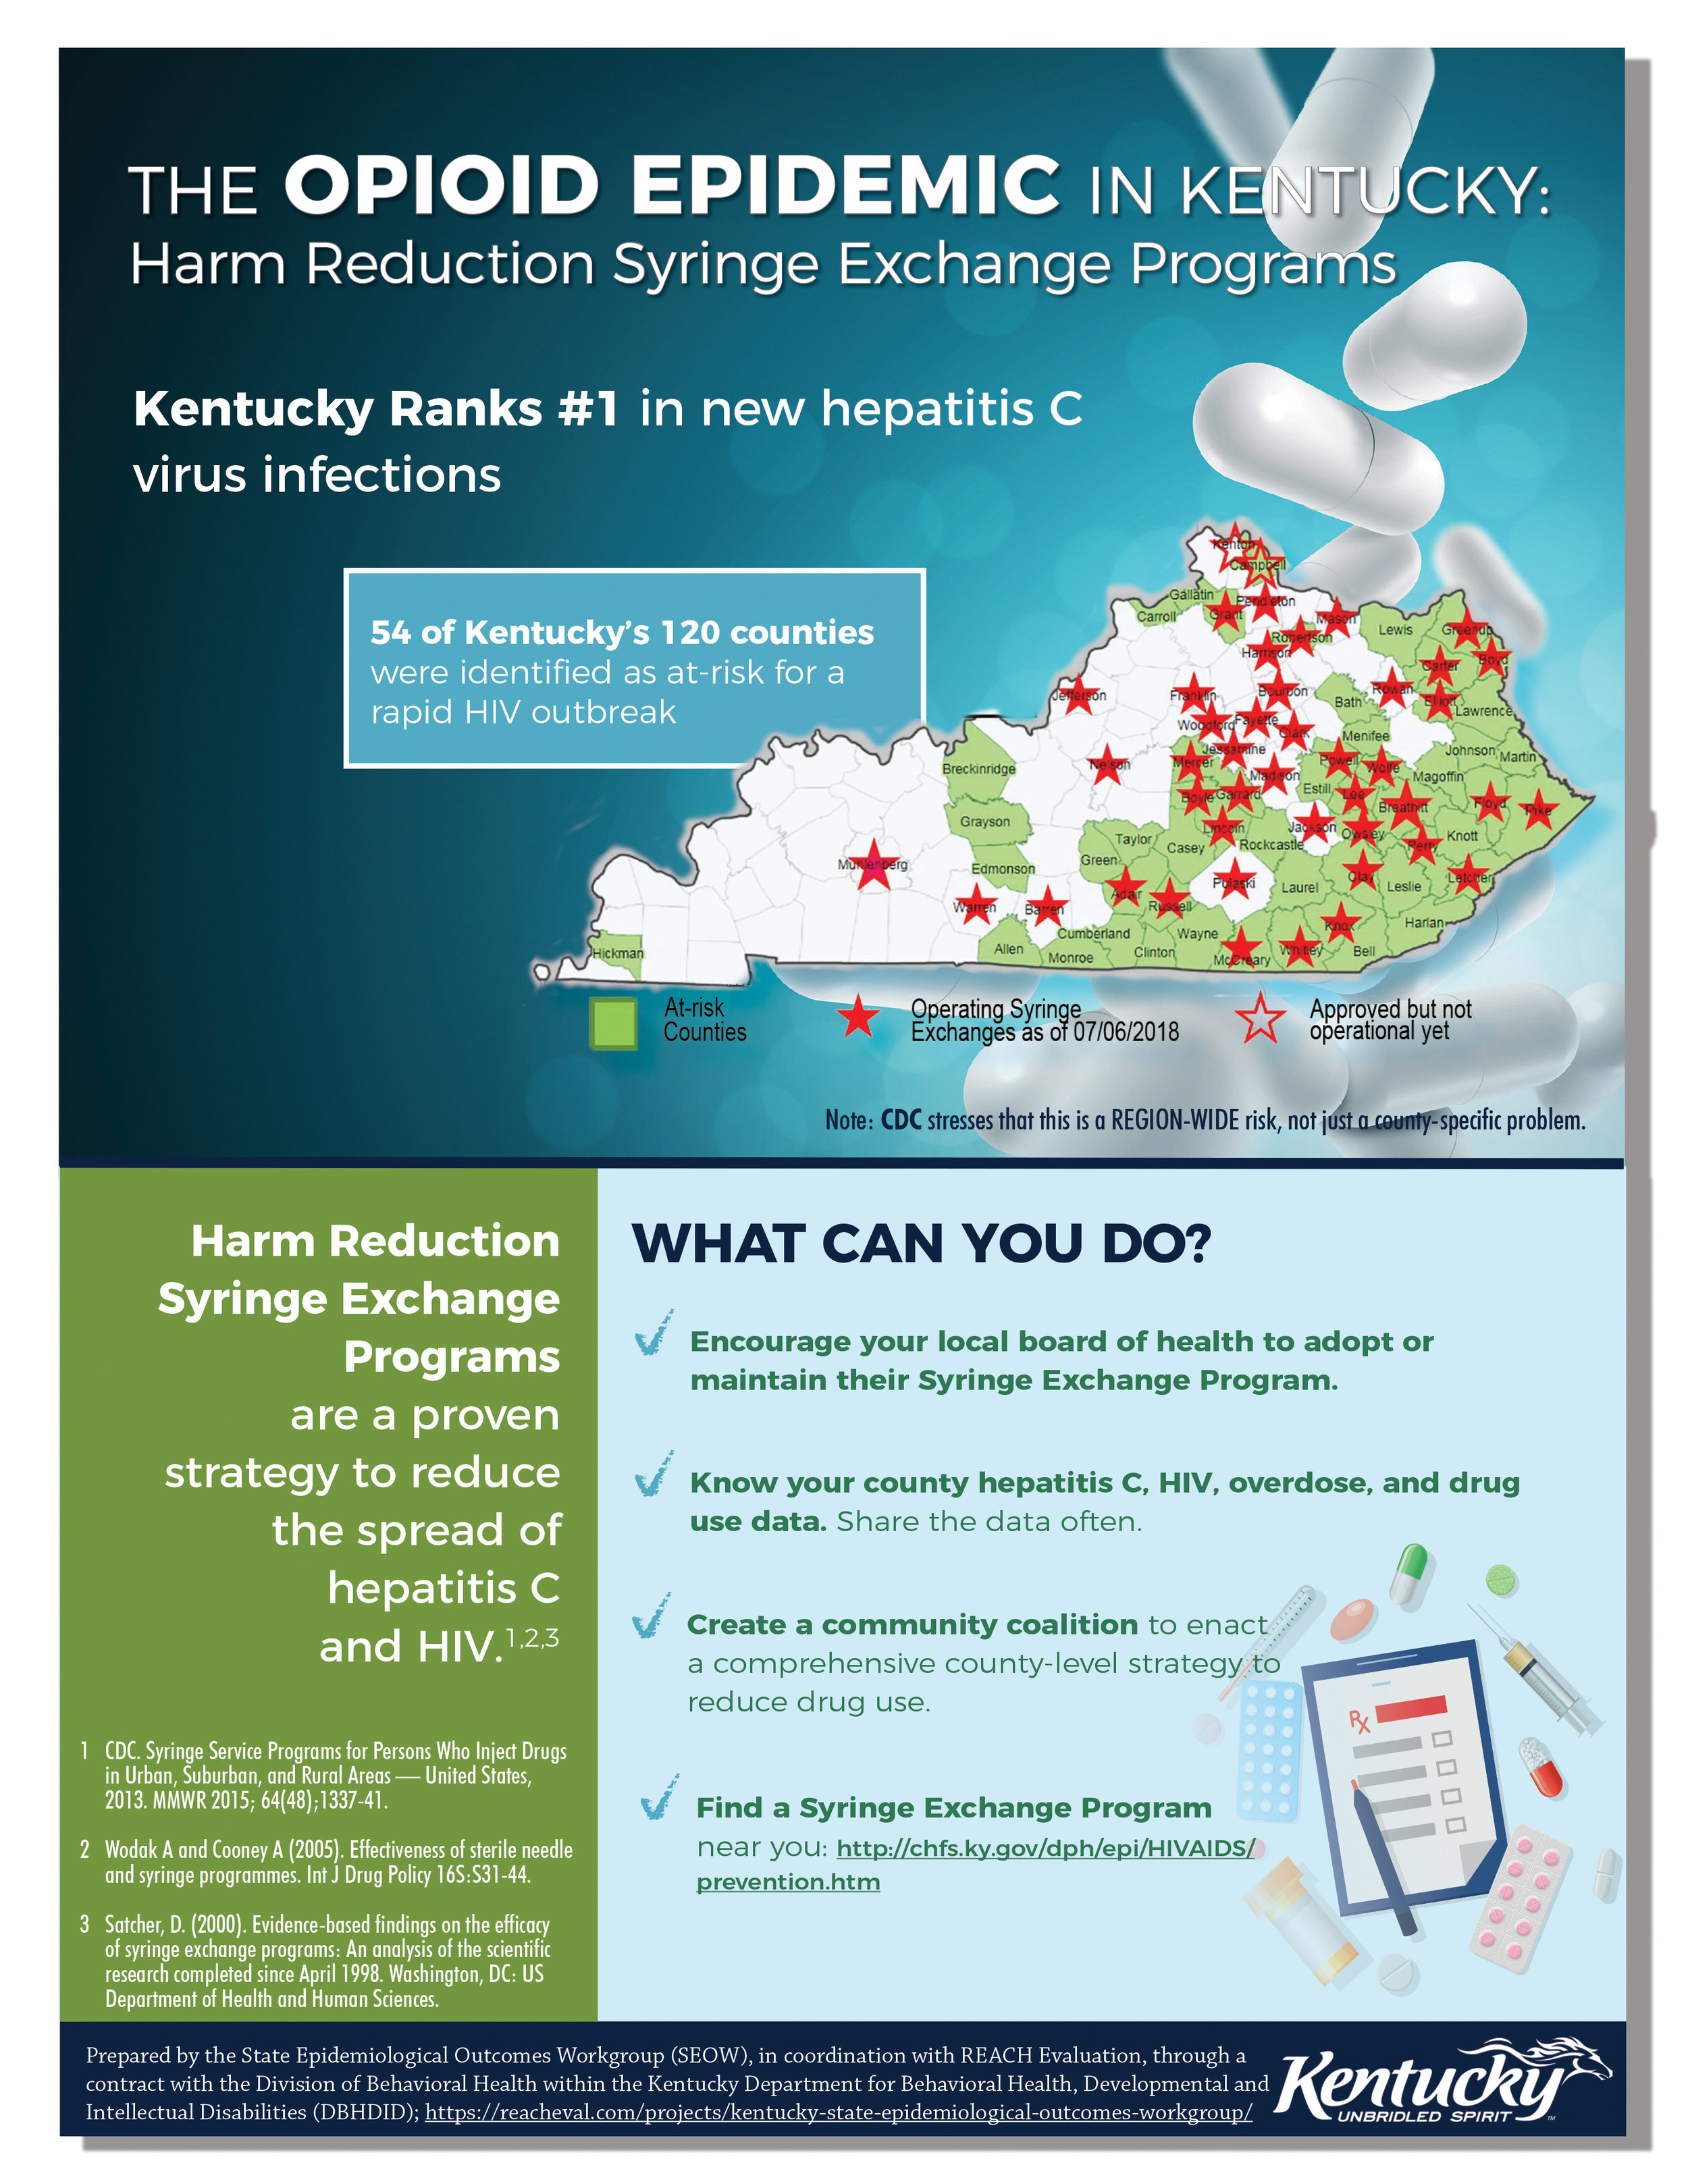 The Opioid Epidemic in Kentucky: Syringe Exchange Programs - Infographic March 2018